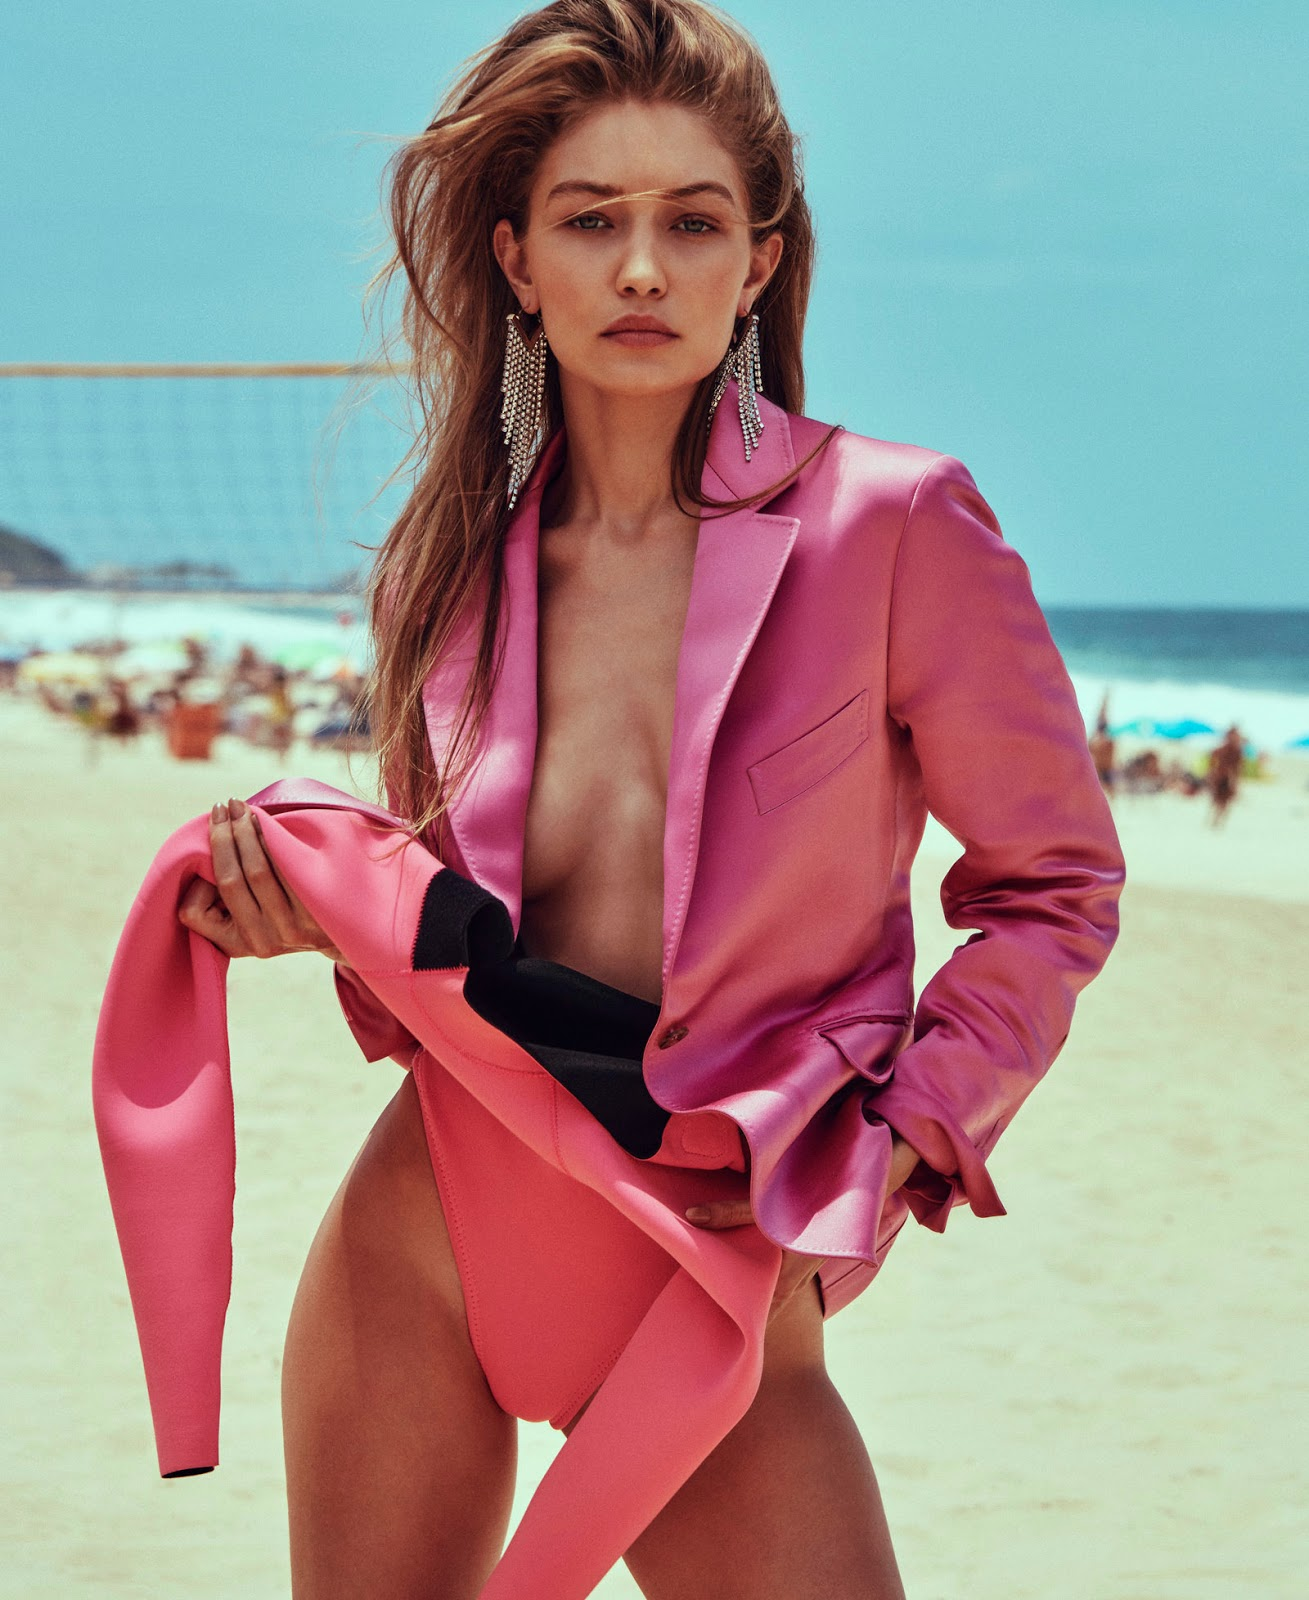 Gigi Hadid by Chris Colls for Elle, March 2019